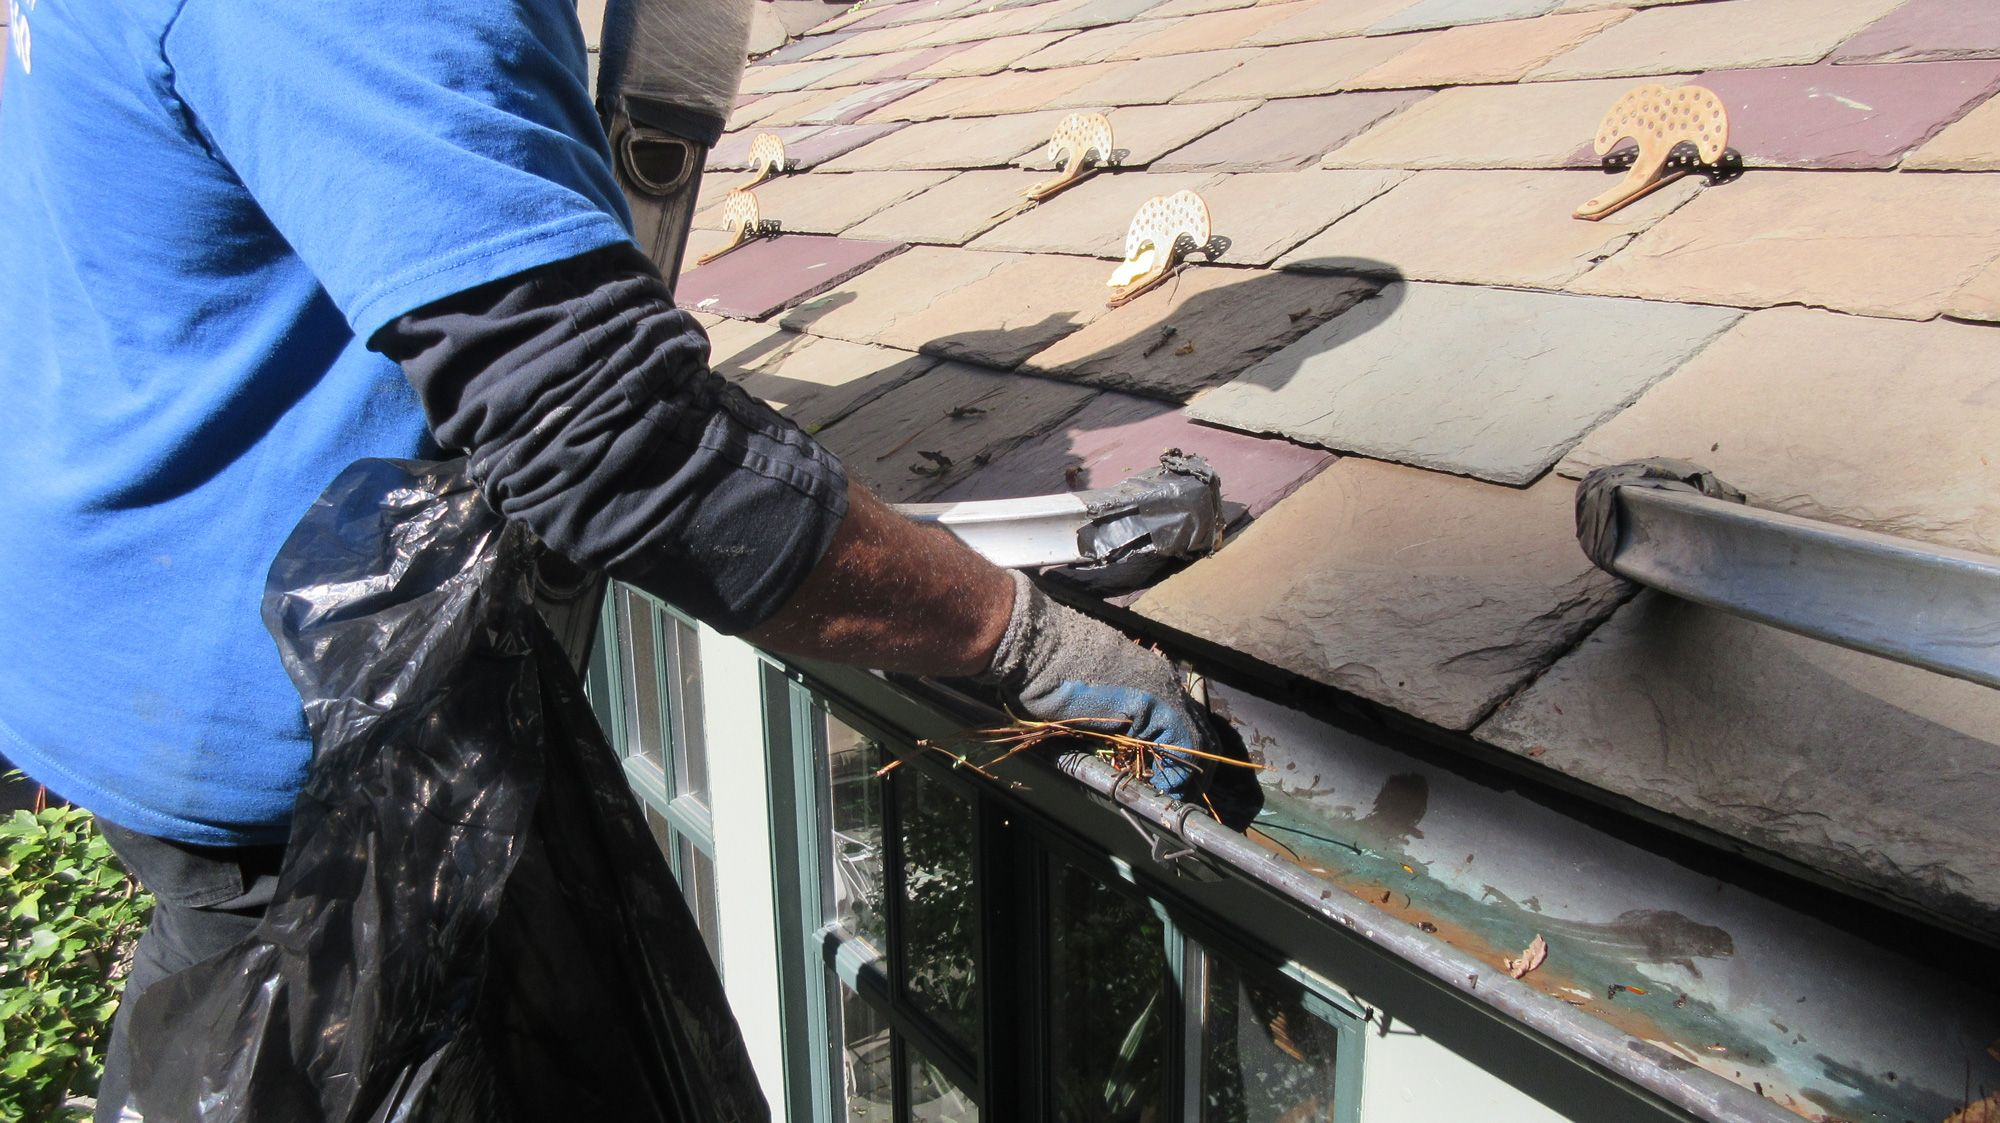 Concrete Cleaning Services Pittsburgh Gutter Washing South Hills Cleaning Gutters Roof Cleaning South Hills